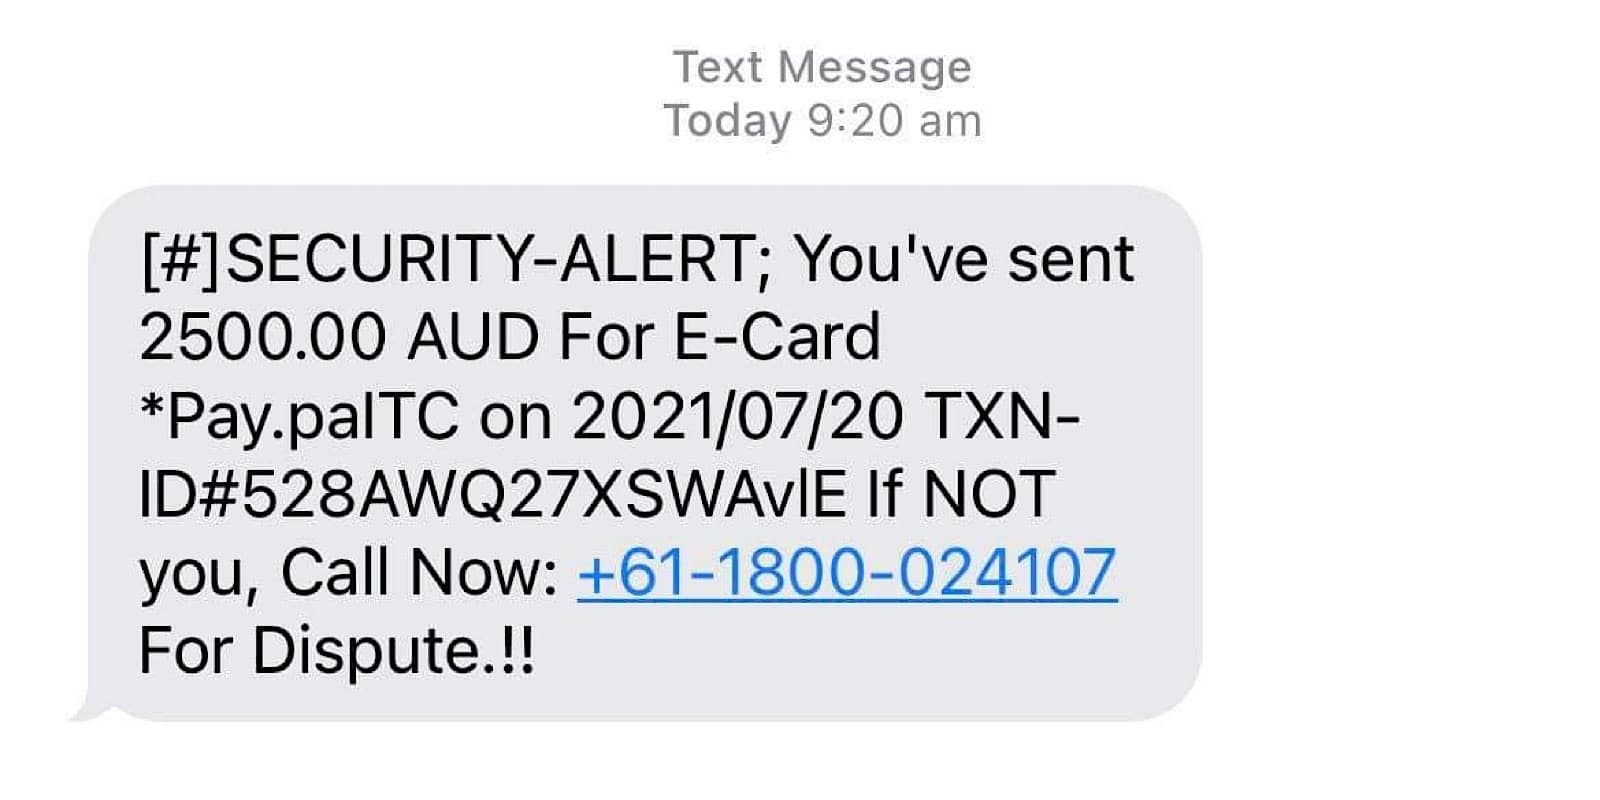 """A scam message sent to a Pickr reader roughly read: """"Security Alert: you've sent 2500.00 AUD for E-Card Pay.palTC on 2021/07/21 If not you, call now for dispute"""""""